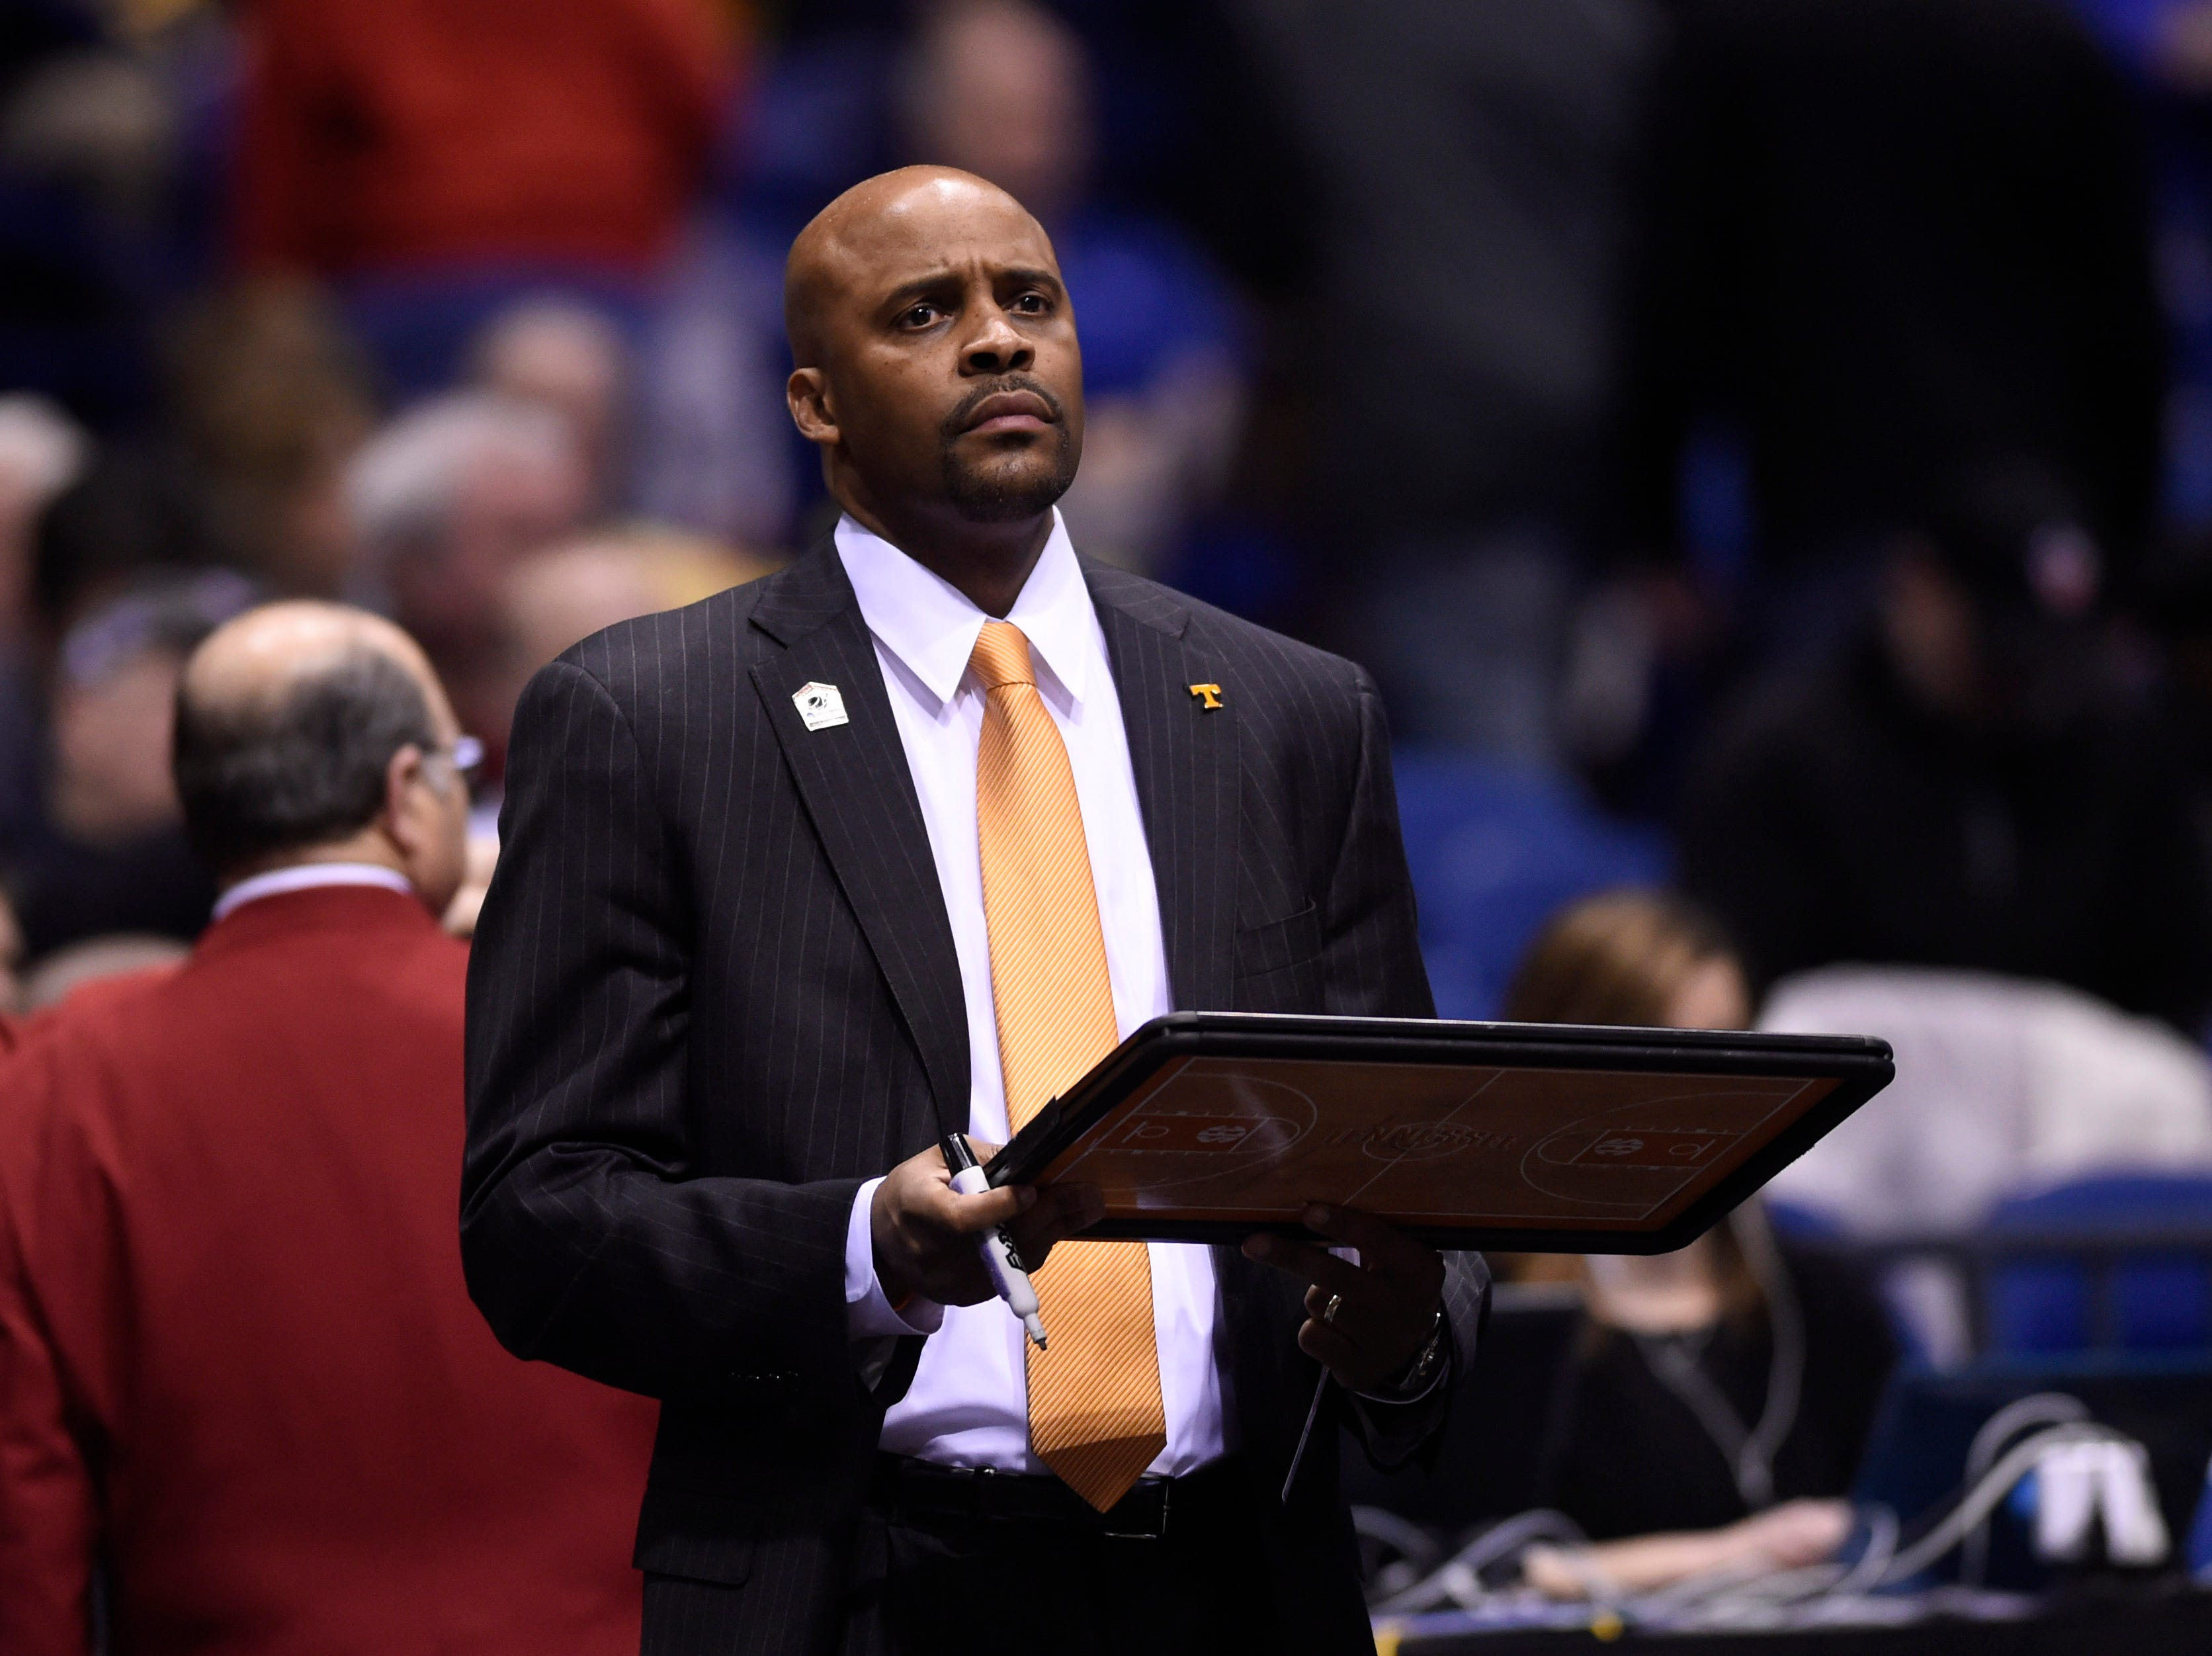 Tennessee head coach Cuonzo Martin stares towards the court before an NCAA Sweet 16 game at Lucas Oil Stadium in Indianapolis, Ind. on Friday, March 28, 2014.